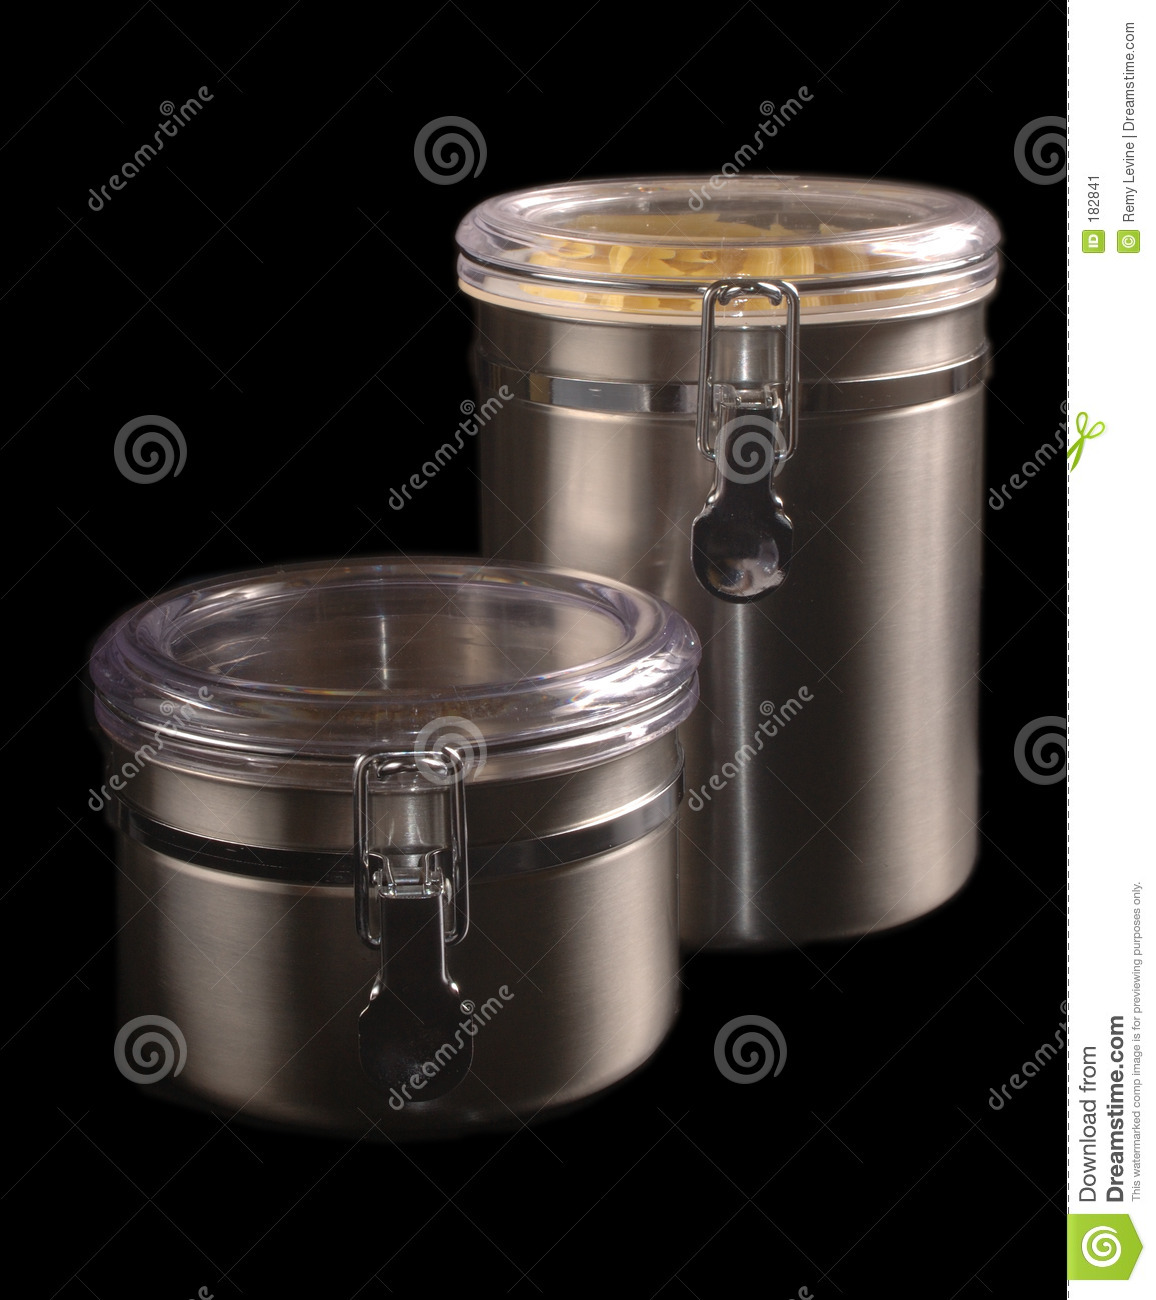 stainless steel kitchen containers stock image image 182841 clear kitchen stainless steel